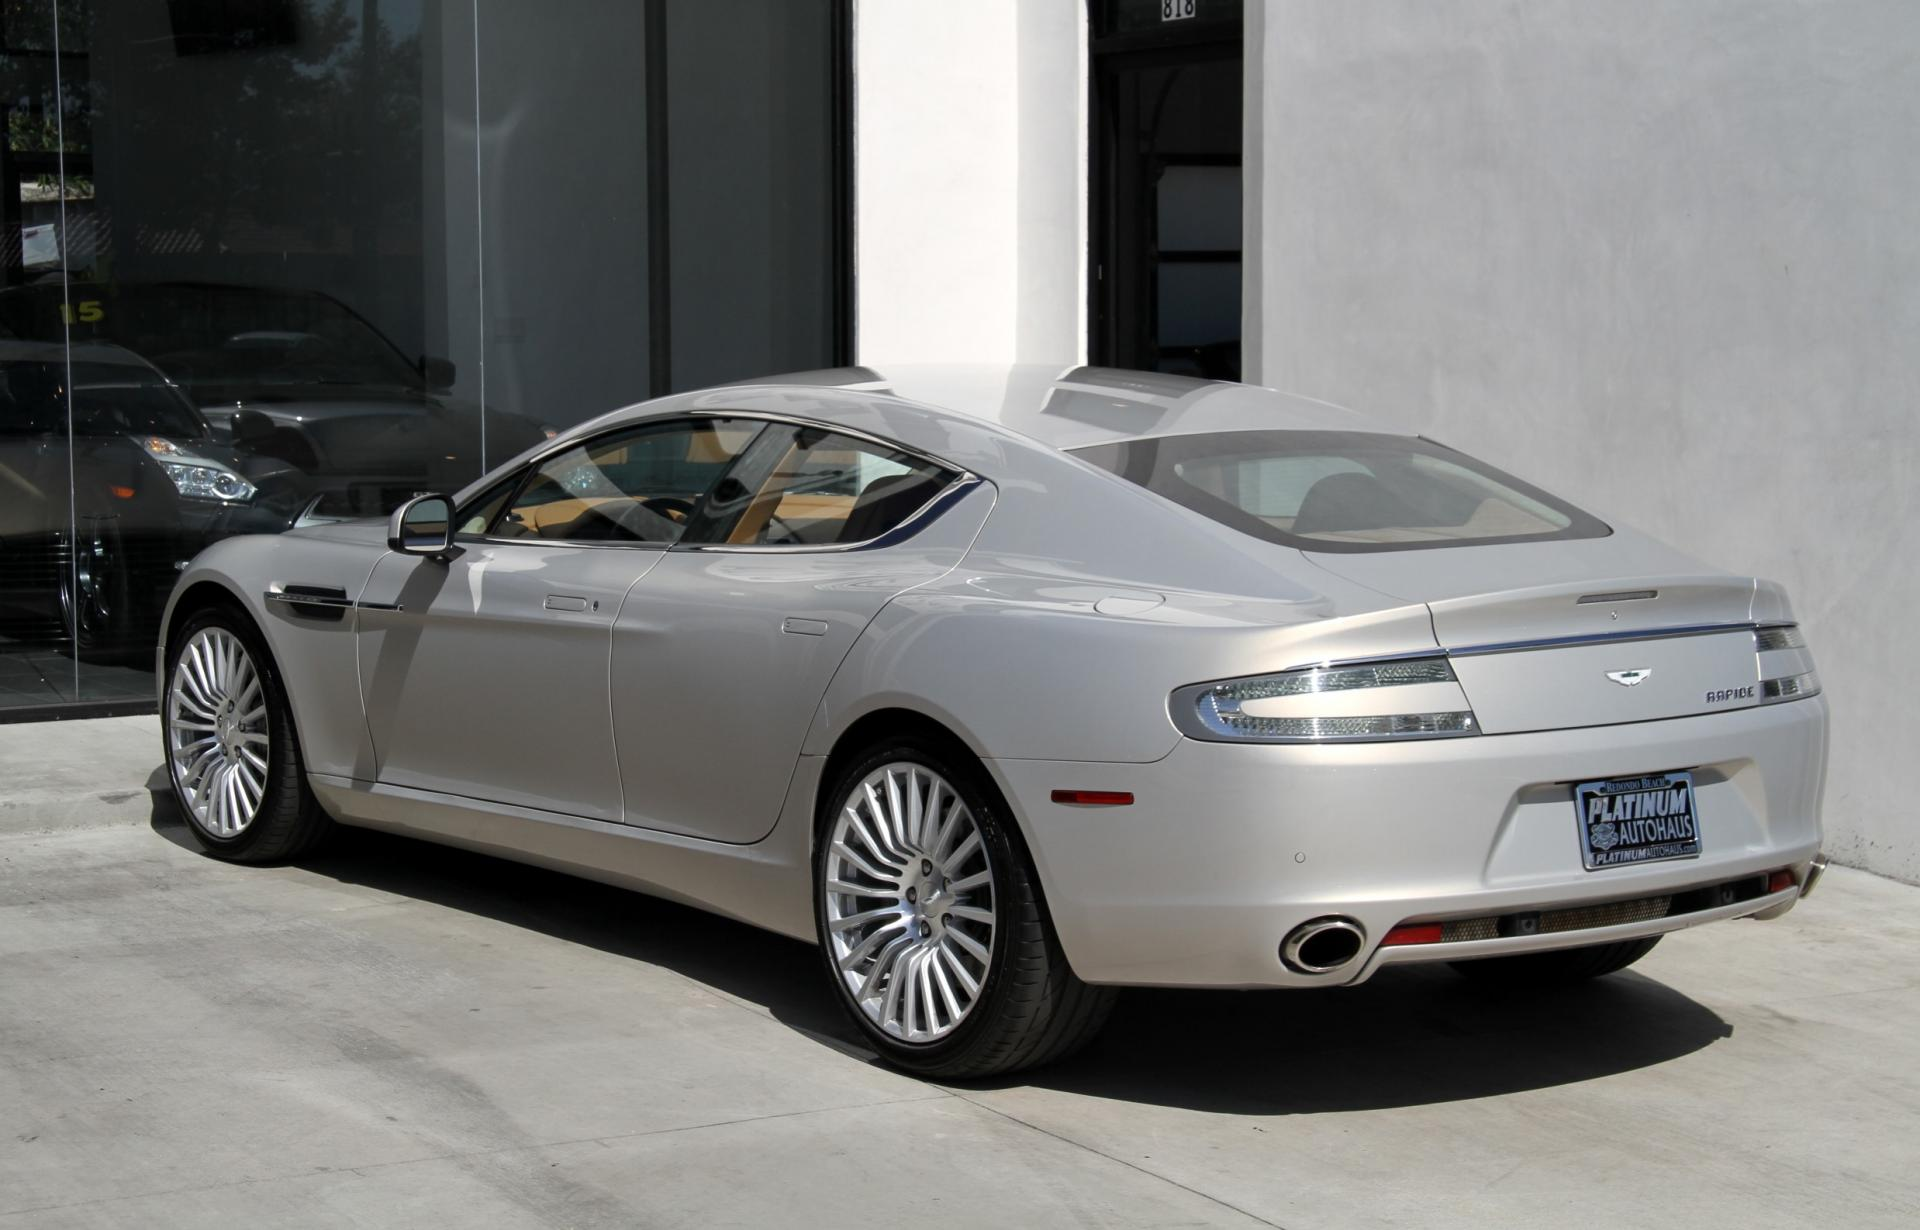 2011 aston martin rapide stock 5993 for sale near for General motors dealers near me